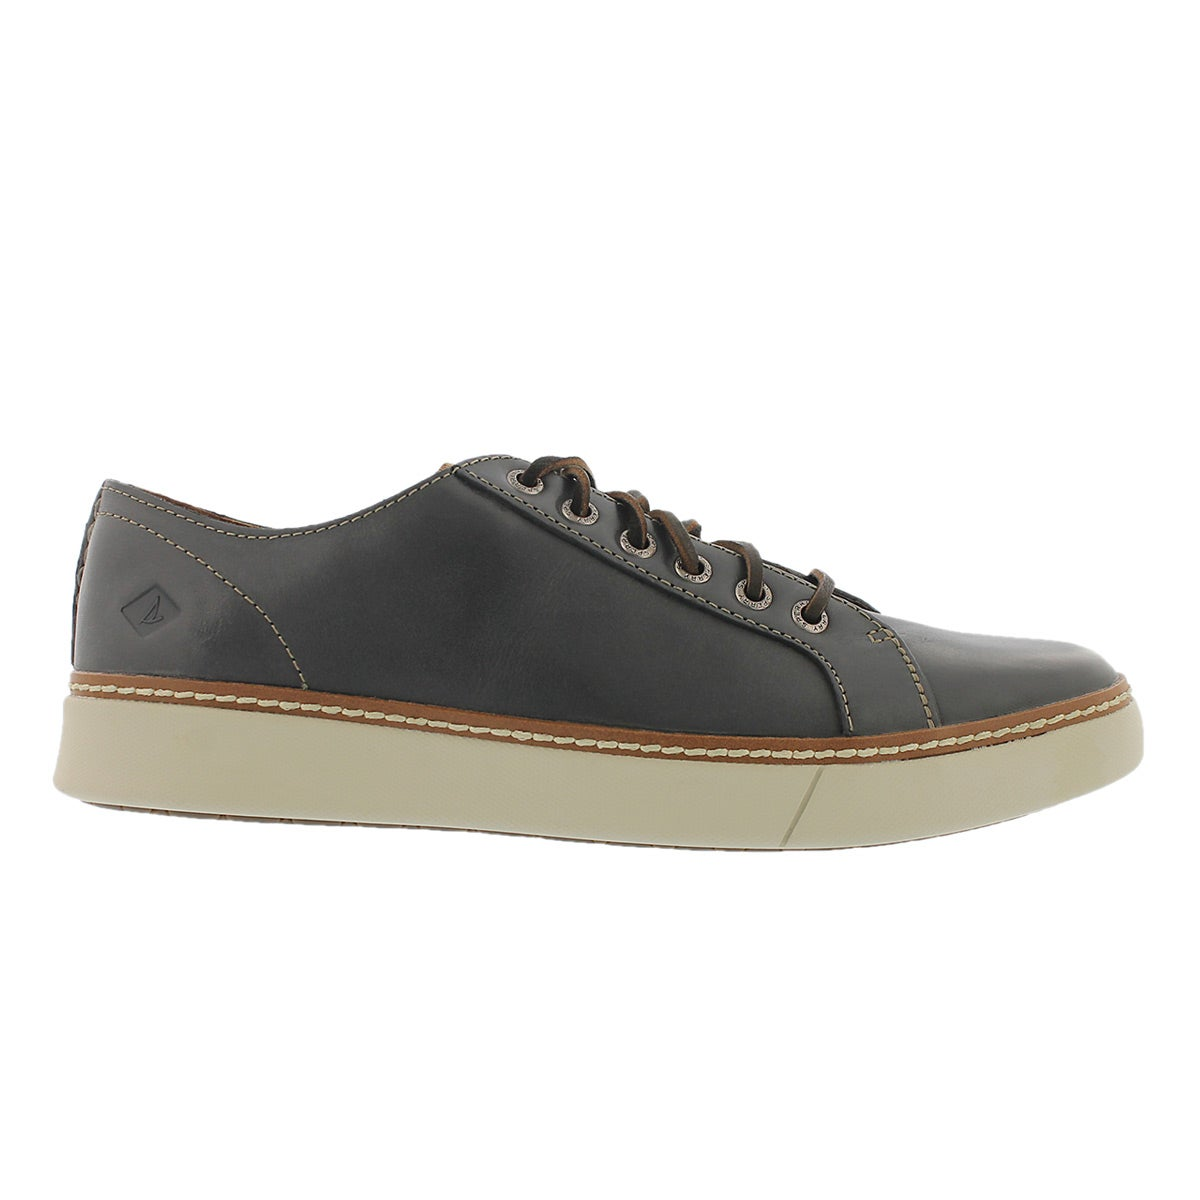 Mns Clipper LTT charcoal lace up sneaker